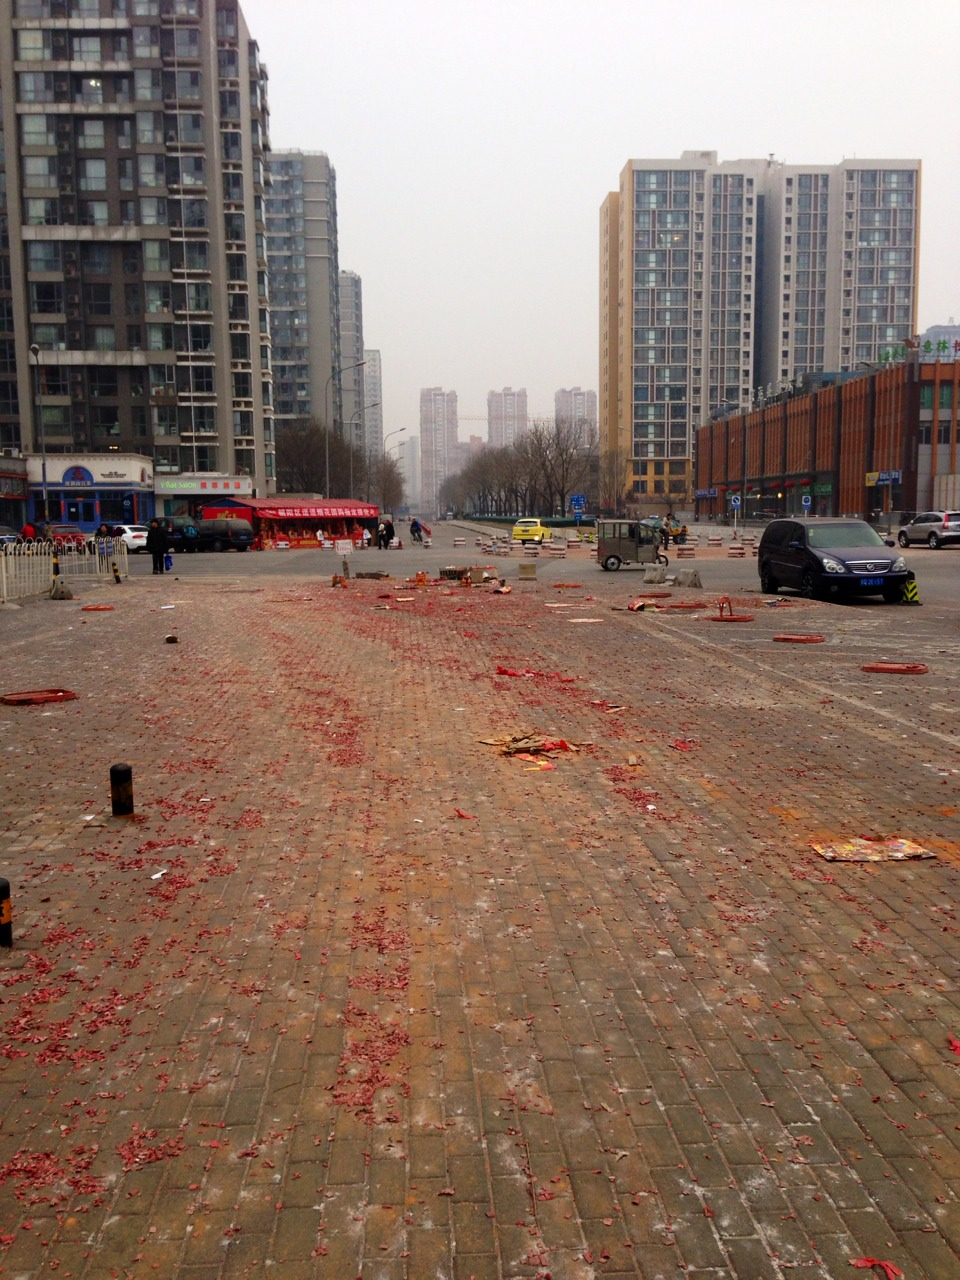 Fireworks have been non stop ever since Chinese New Year started. This is some of the aftermath. The streets are covered in the remains of those tiny little things that go 'boom'.